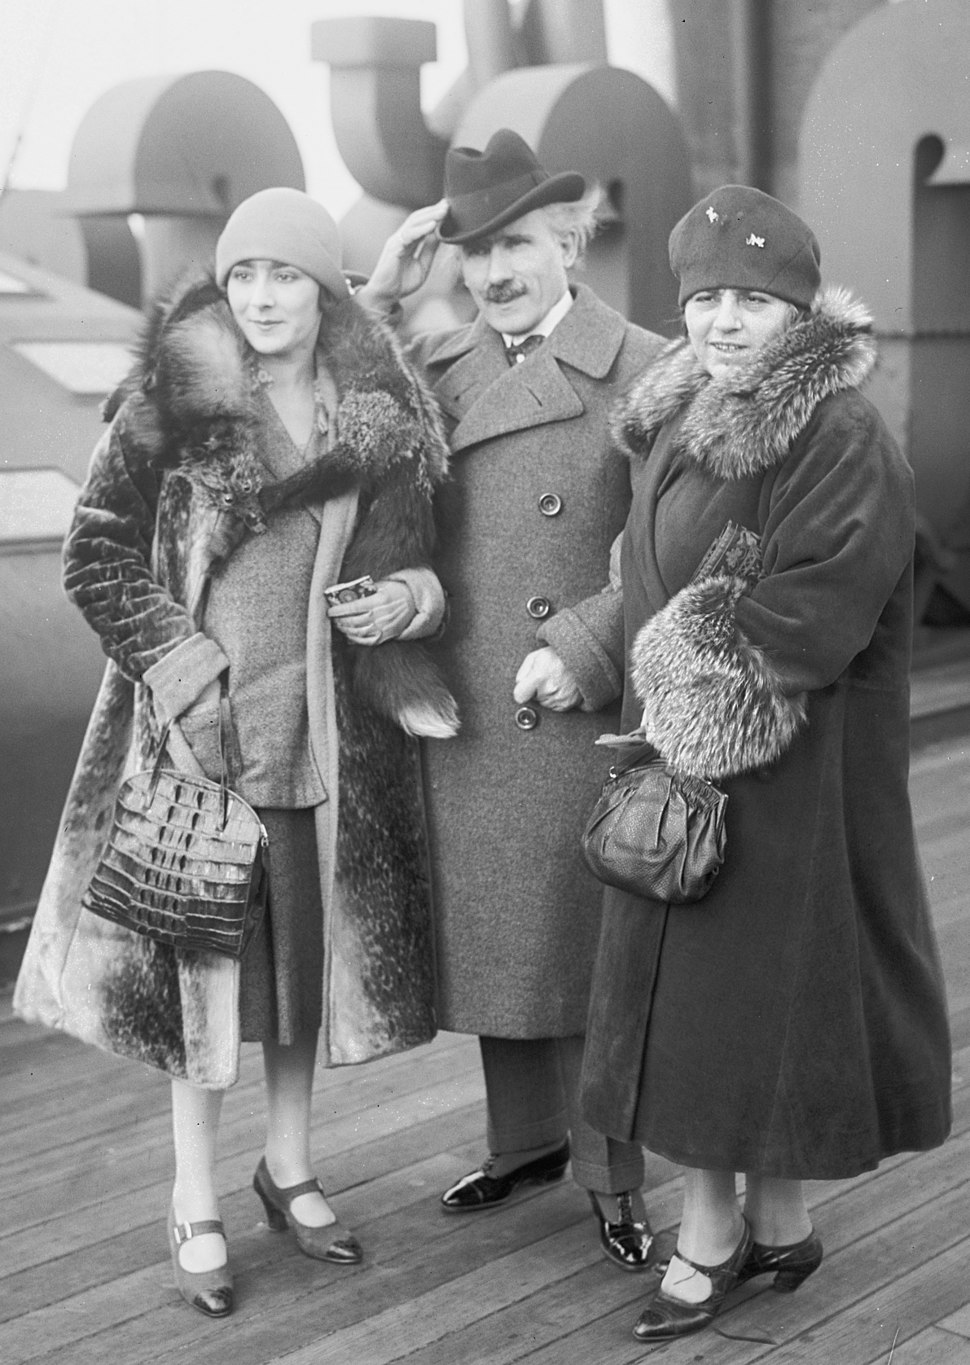 Toscanini wife and unidentified woman